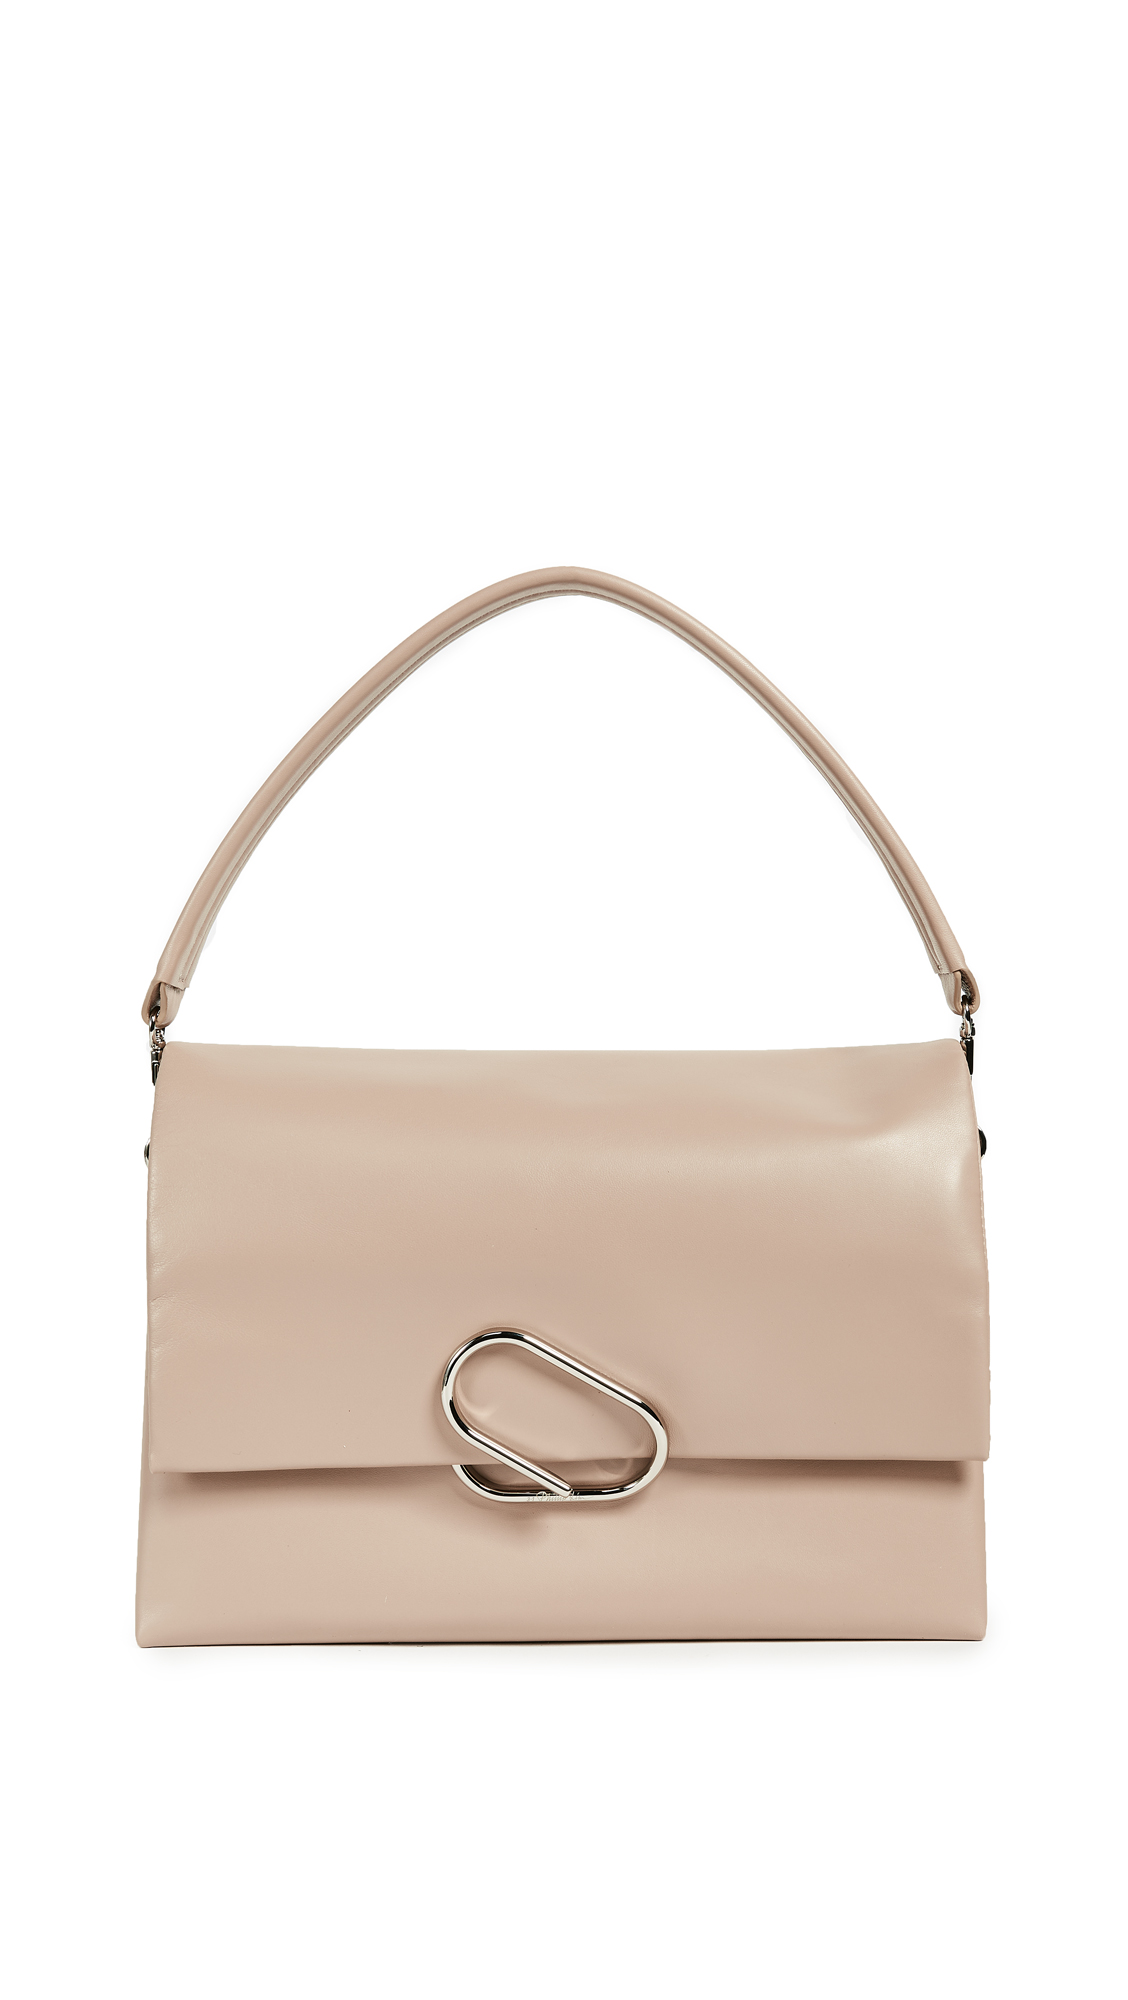 3.1 Phillip Lim Alix Oversized Shoulder Bag - Fawn